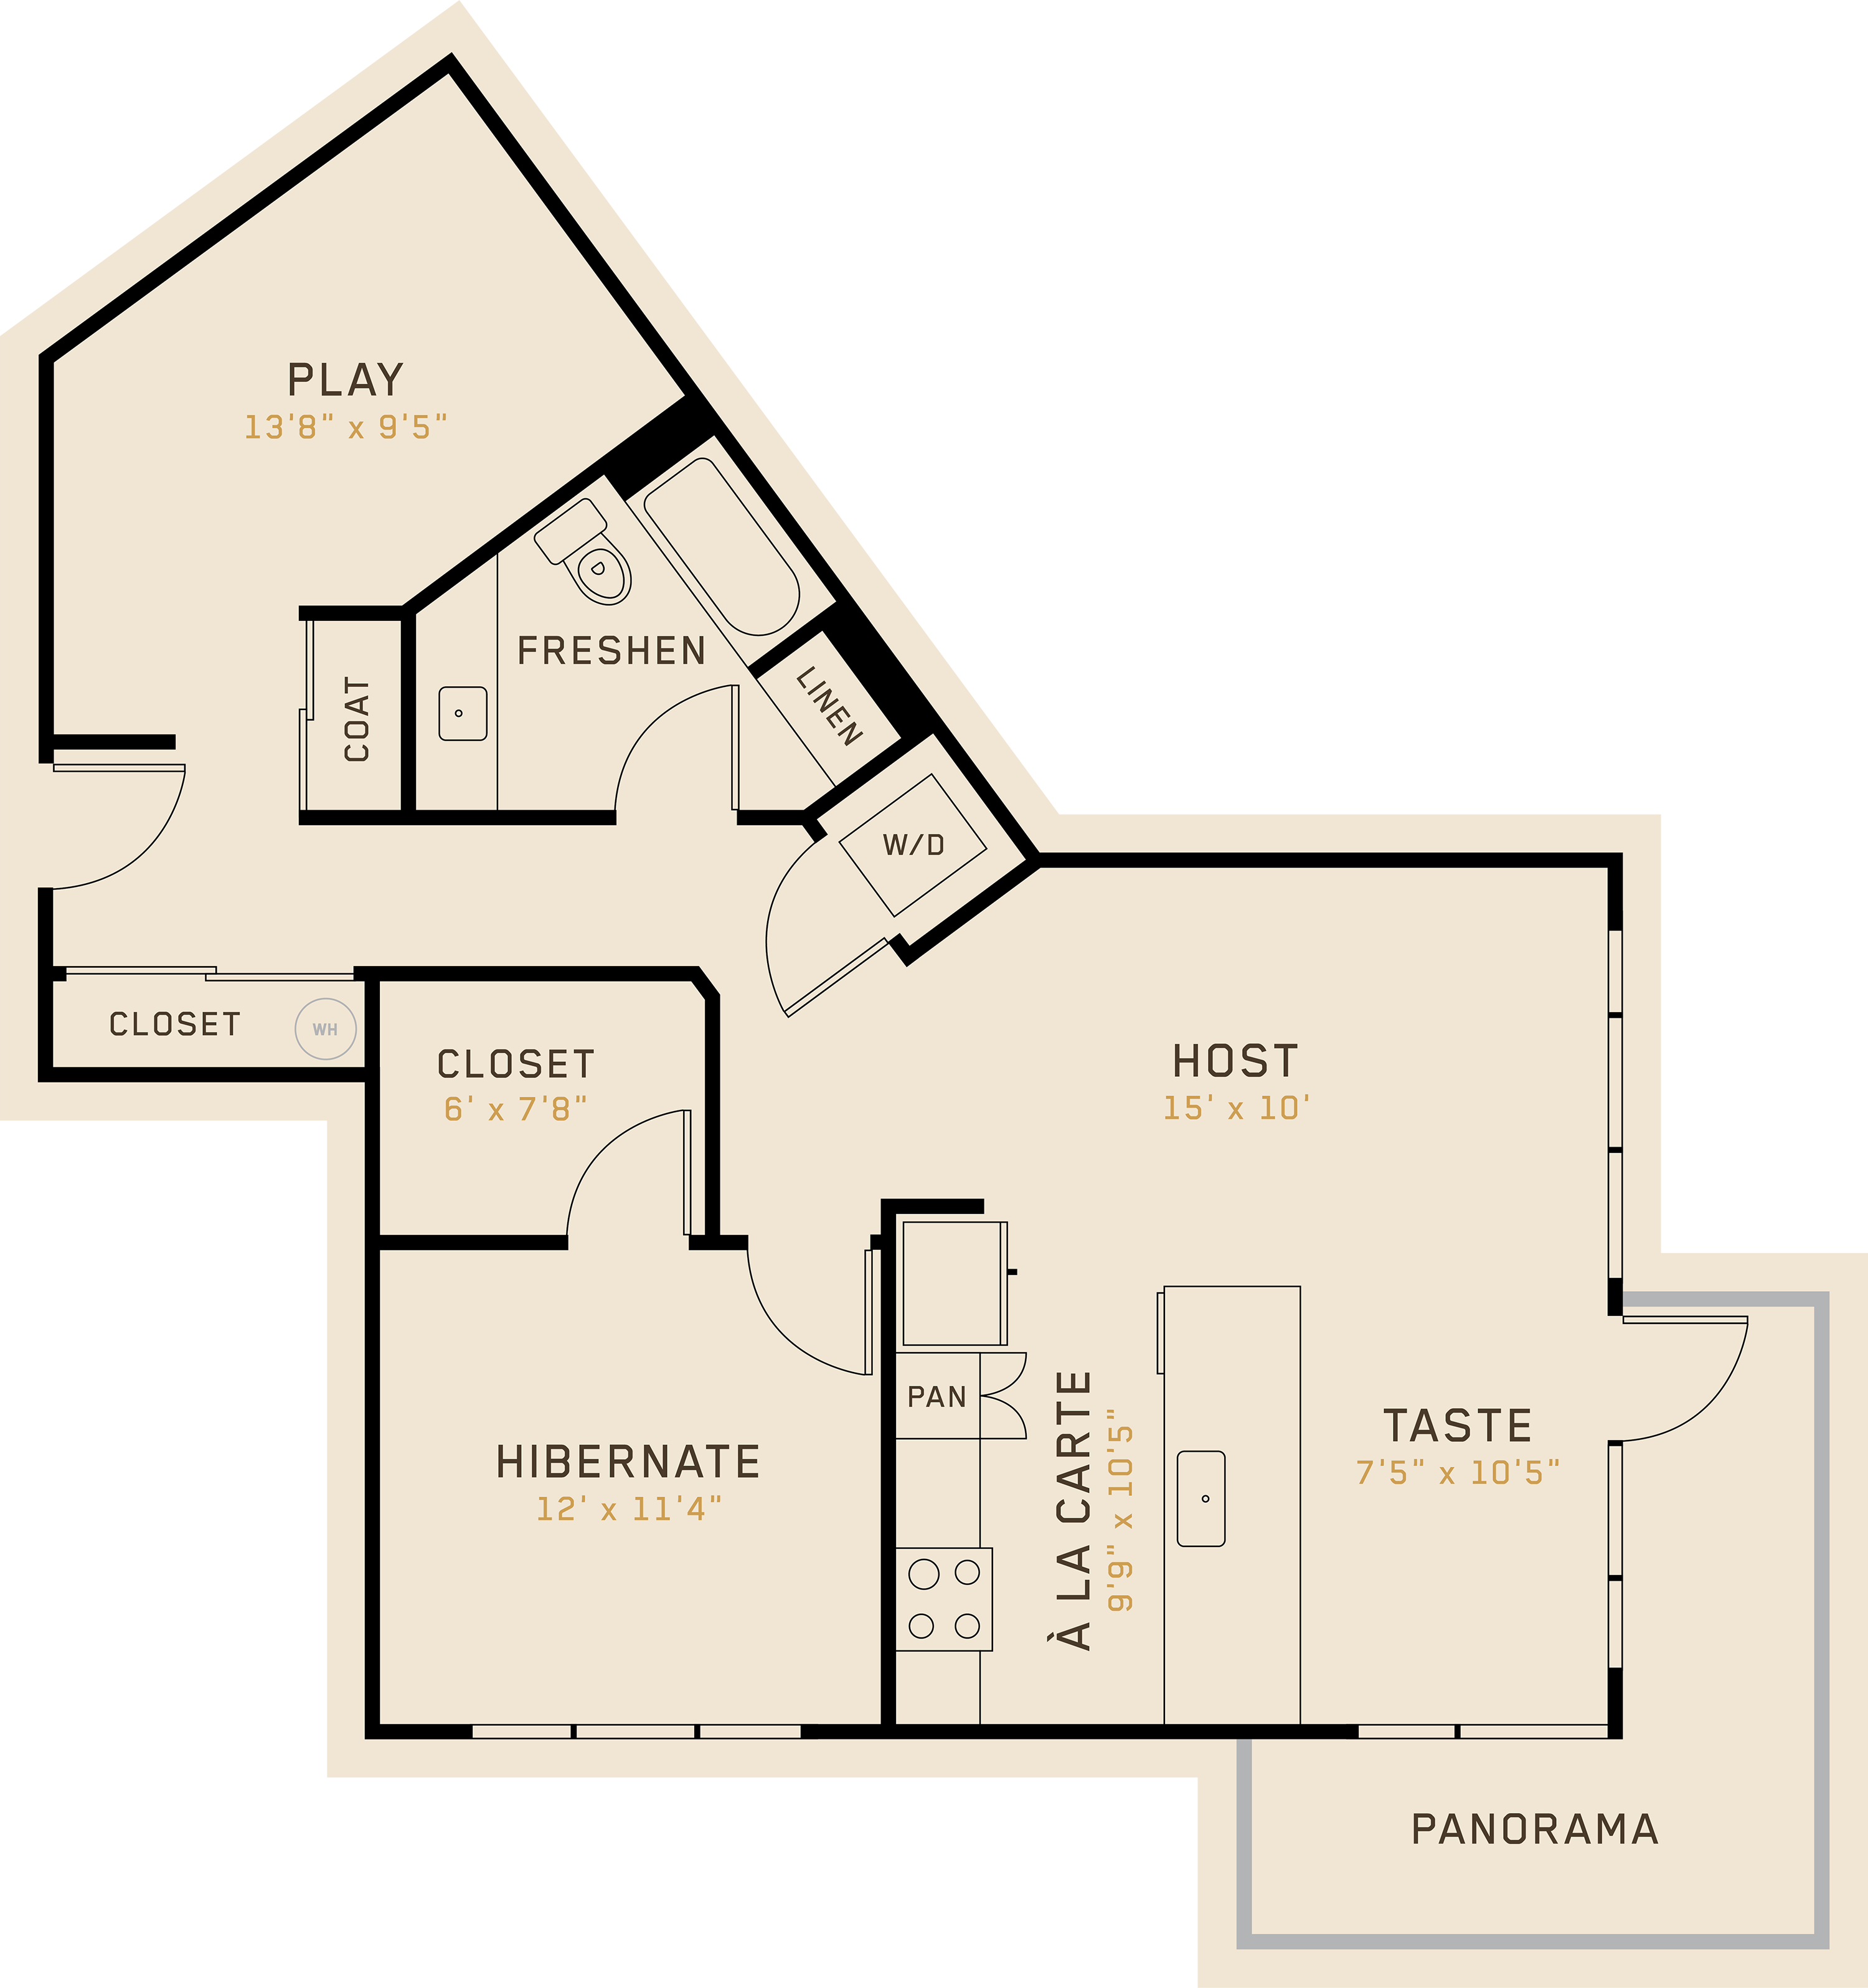 A1N floor plan featuring 1 bedroom, 1 bathroom, and is 974 square feet